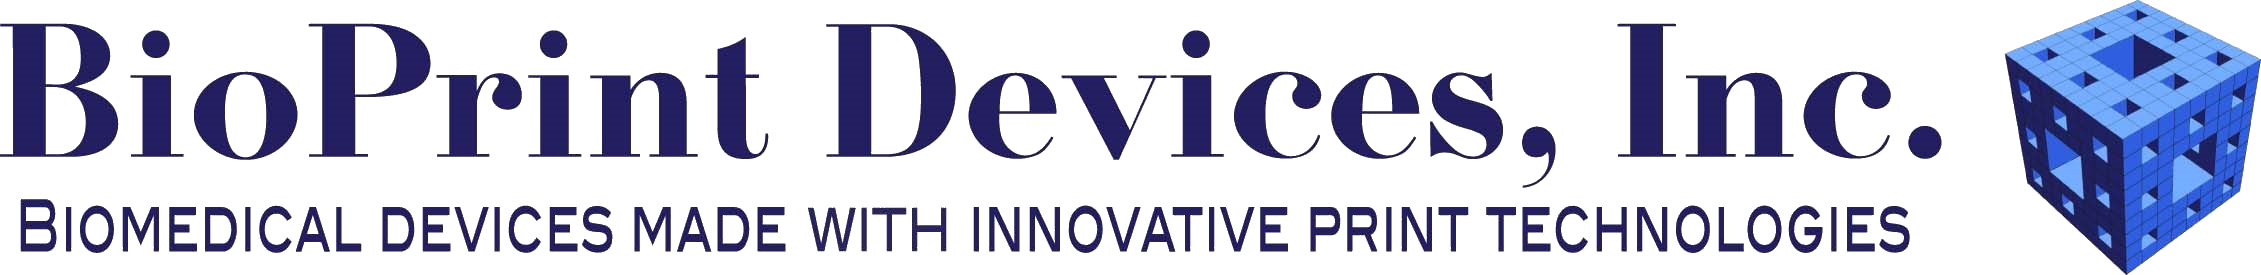 bioprintdevices-logo